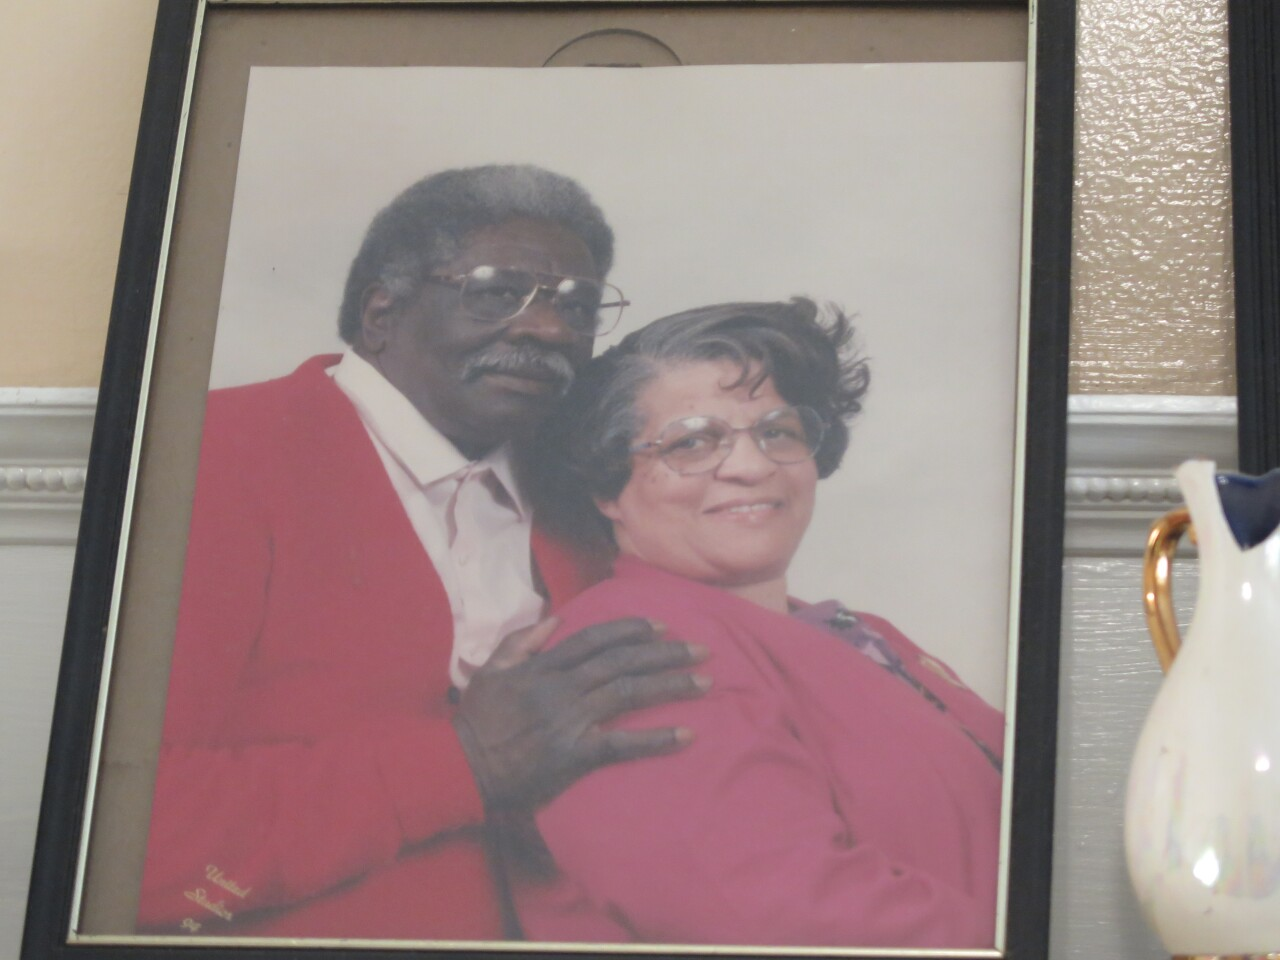 This picture shows a portrait of Robert McCrary and his late wife, Verline He has his hand on her shoulder, and they both are smiling.